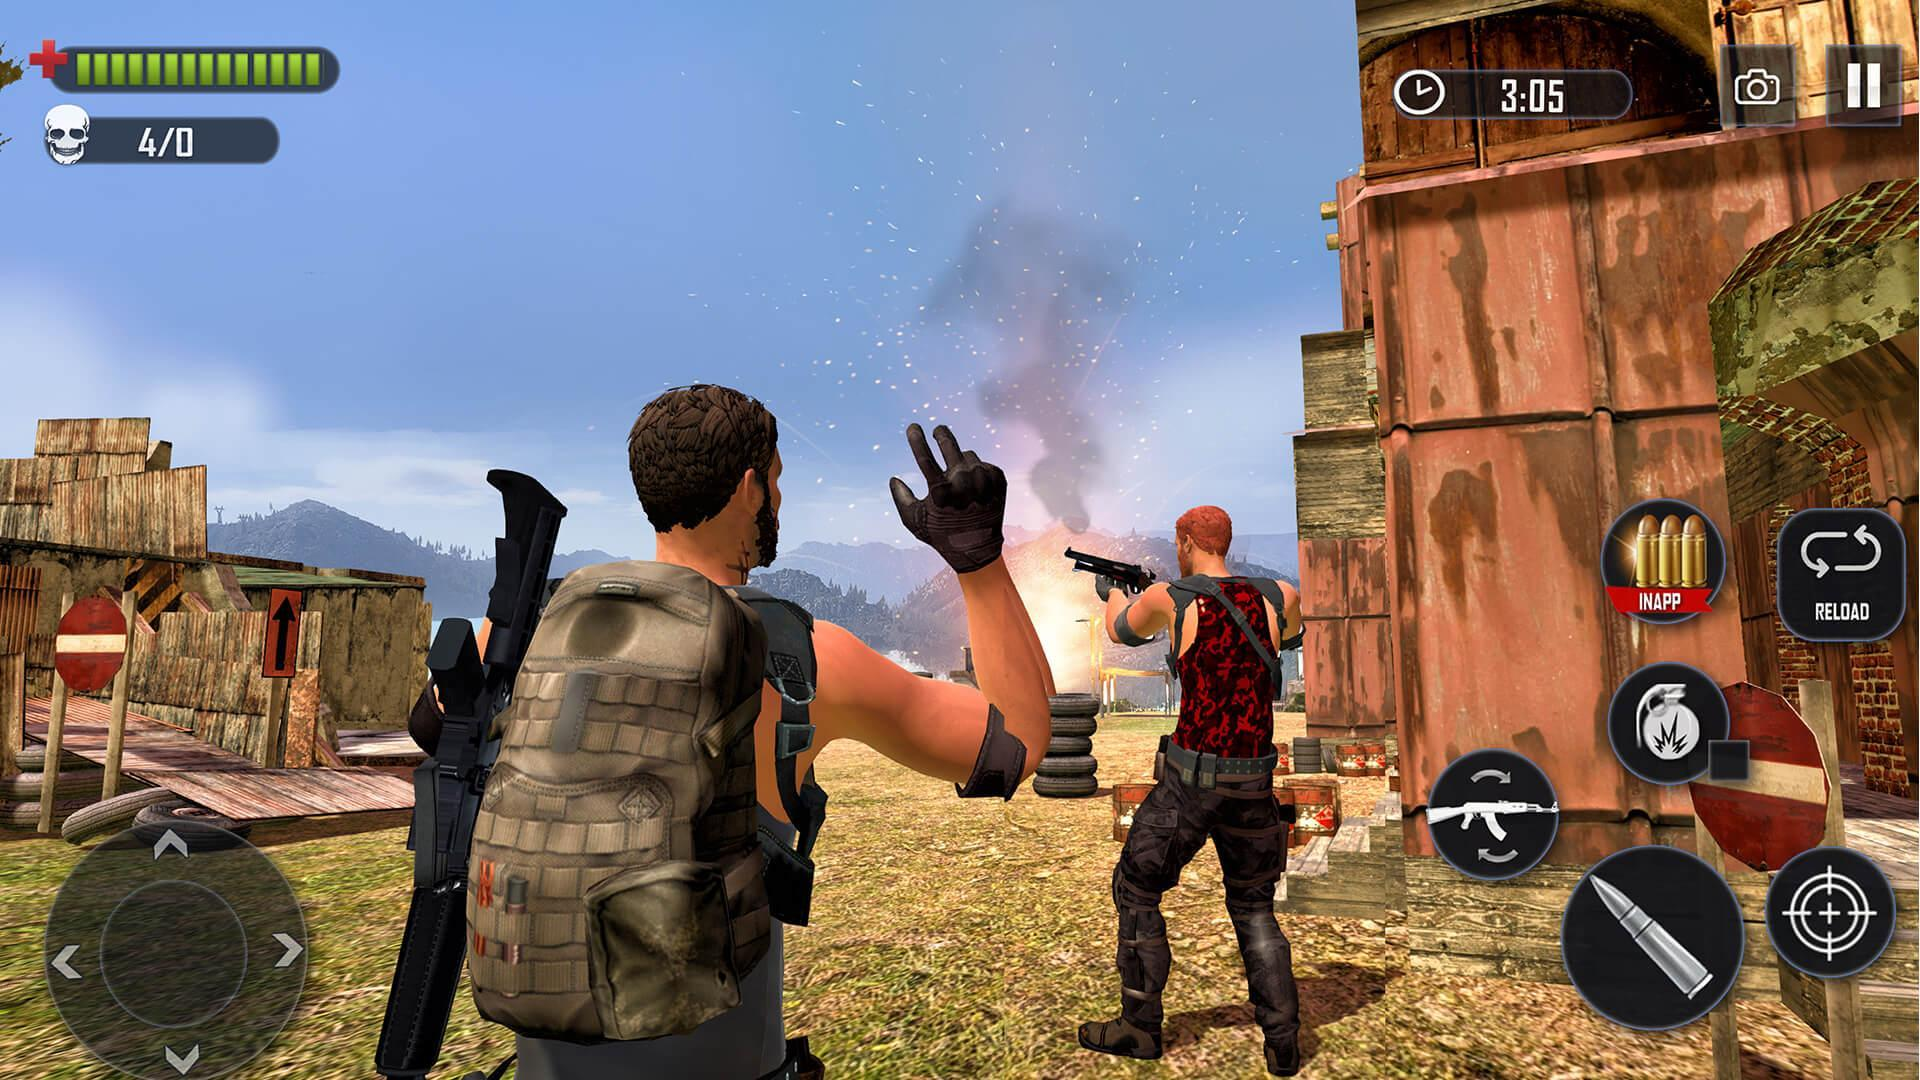 Battleground Fire Free Shooting Games 2020 For Android Apk